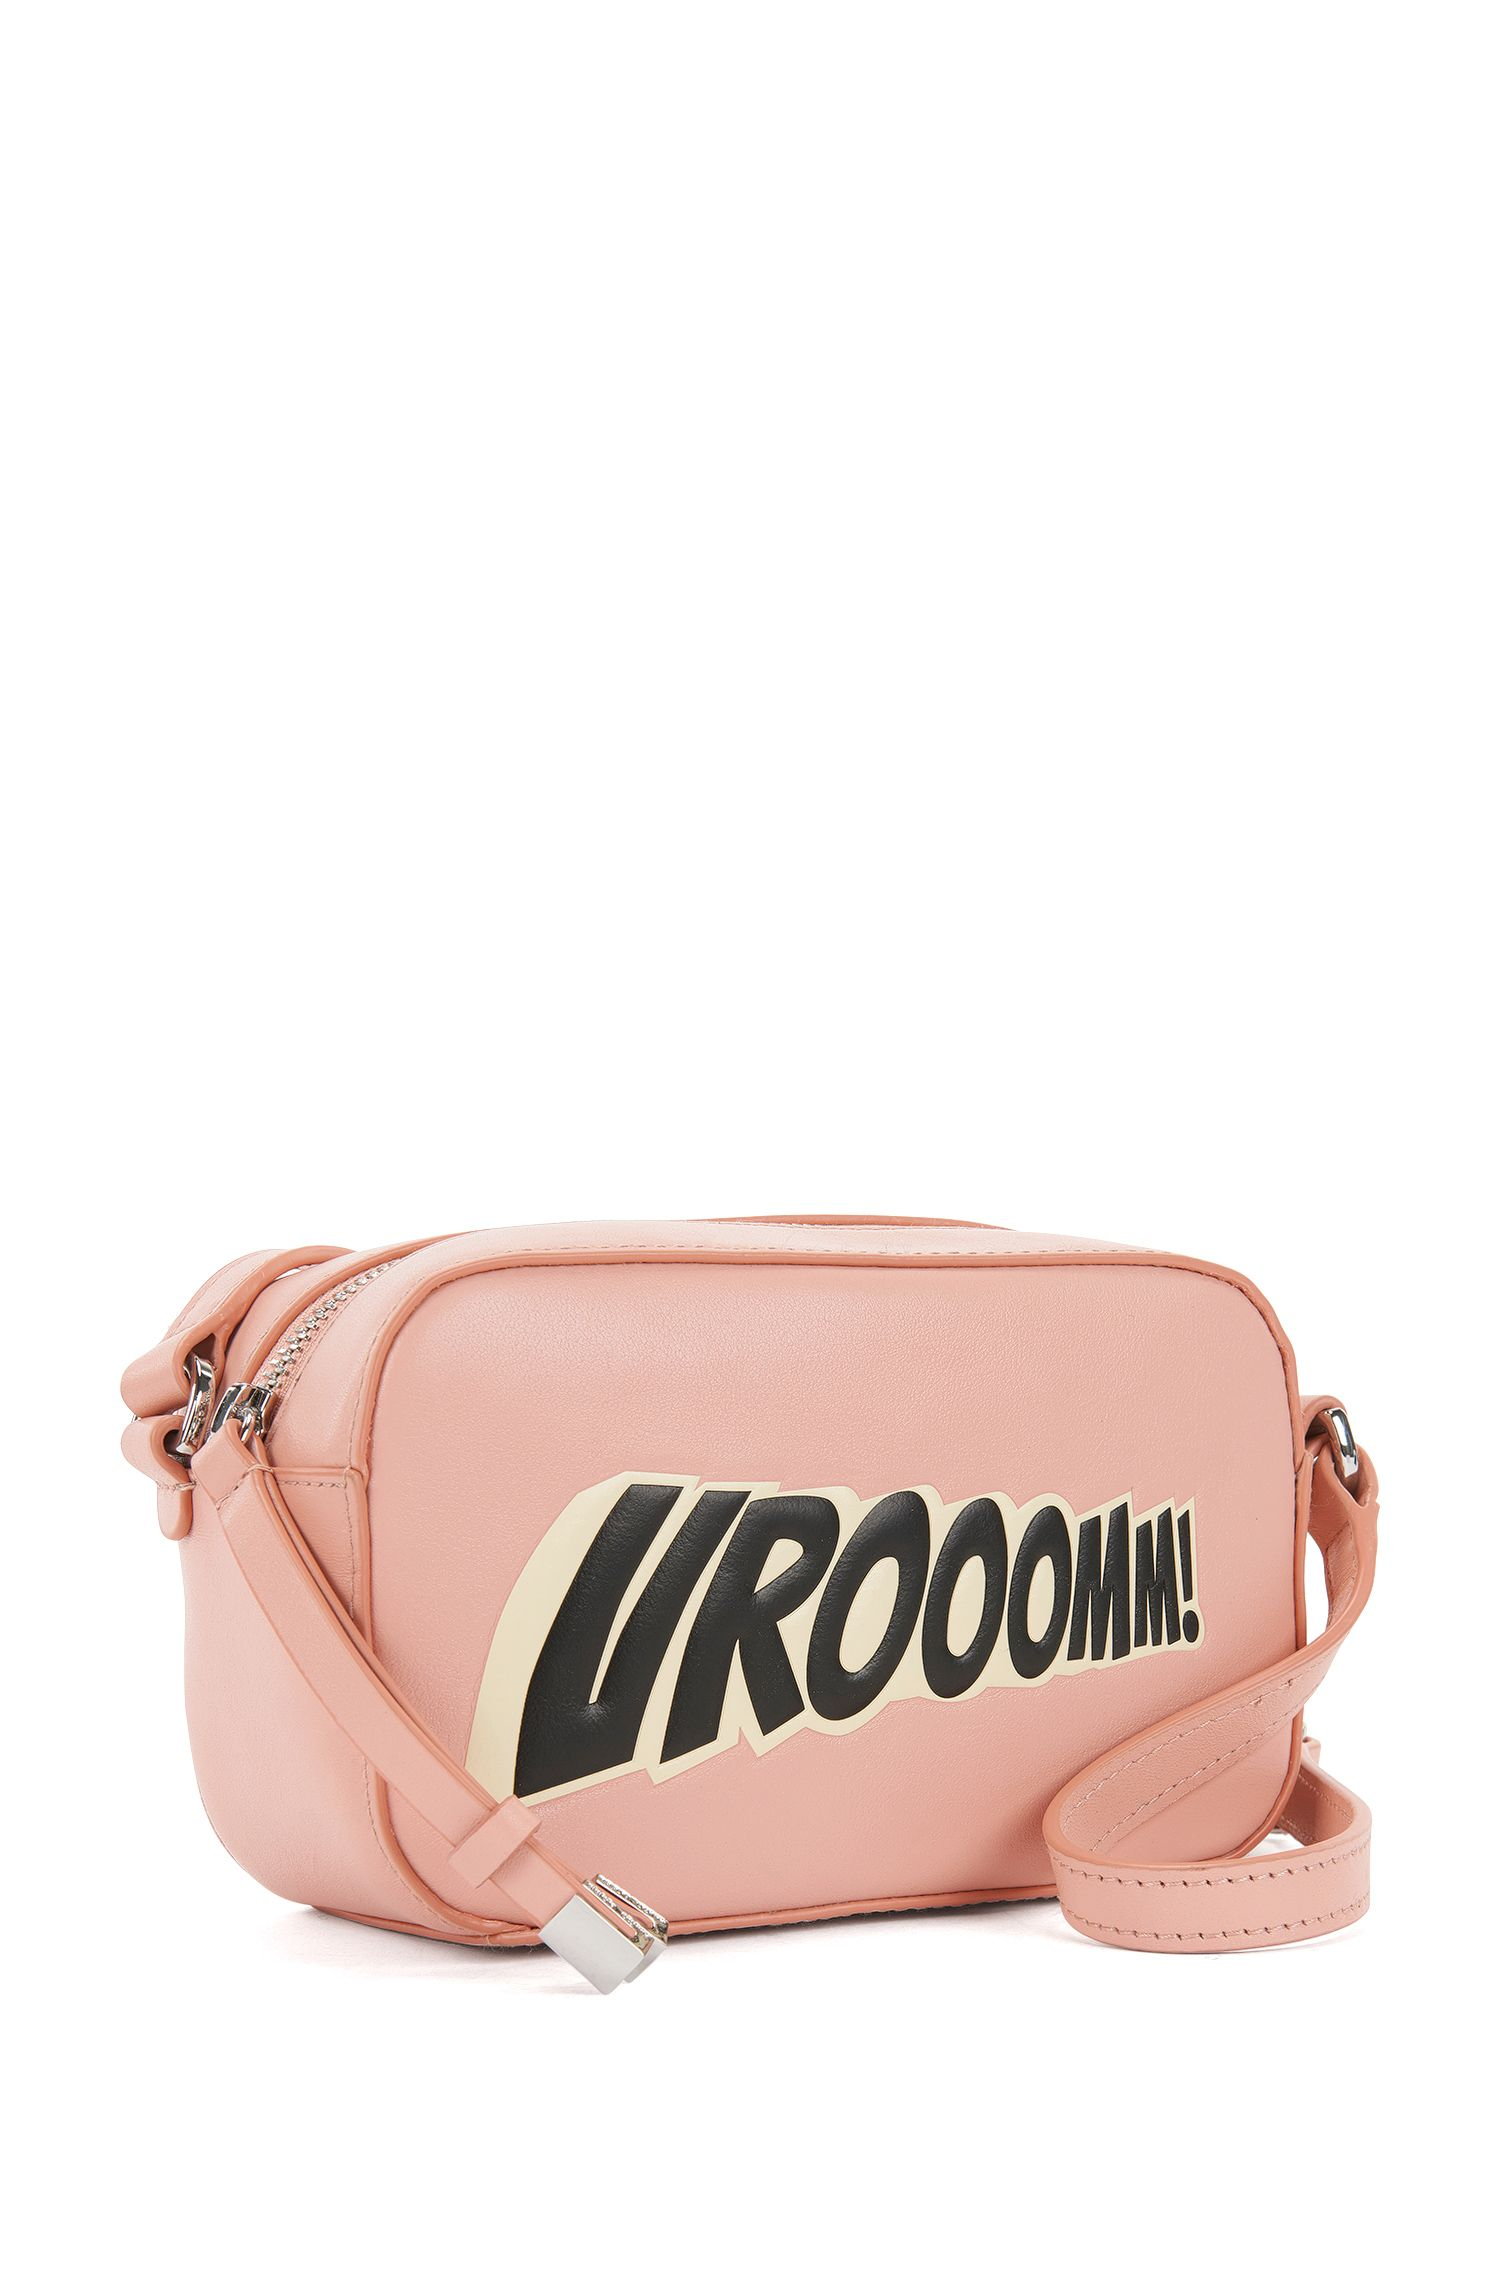 Leather crossbody bag with statement slogan